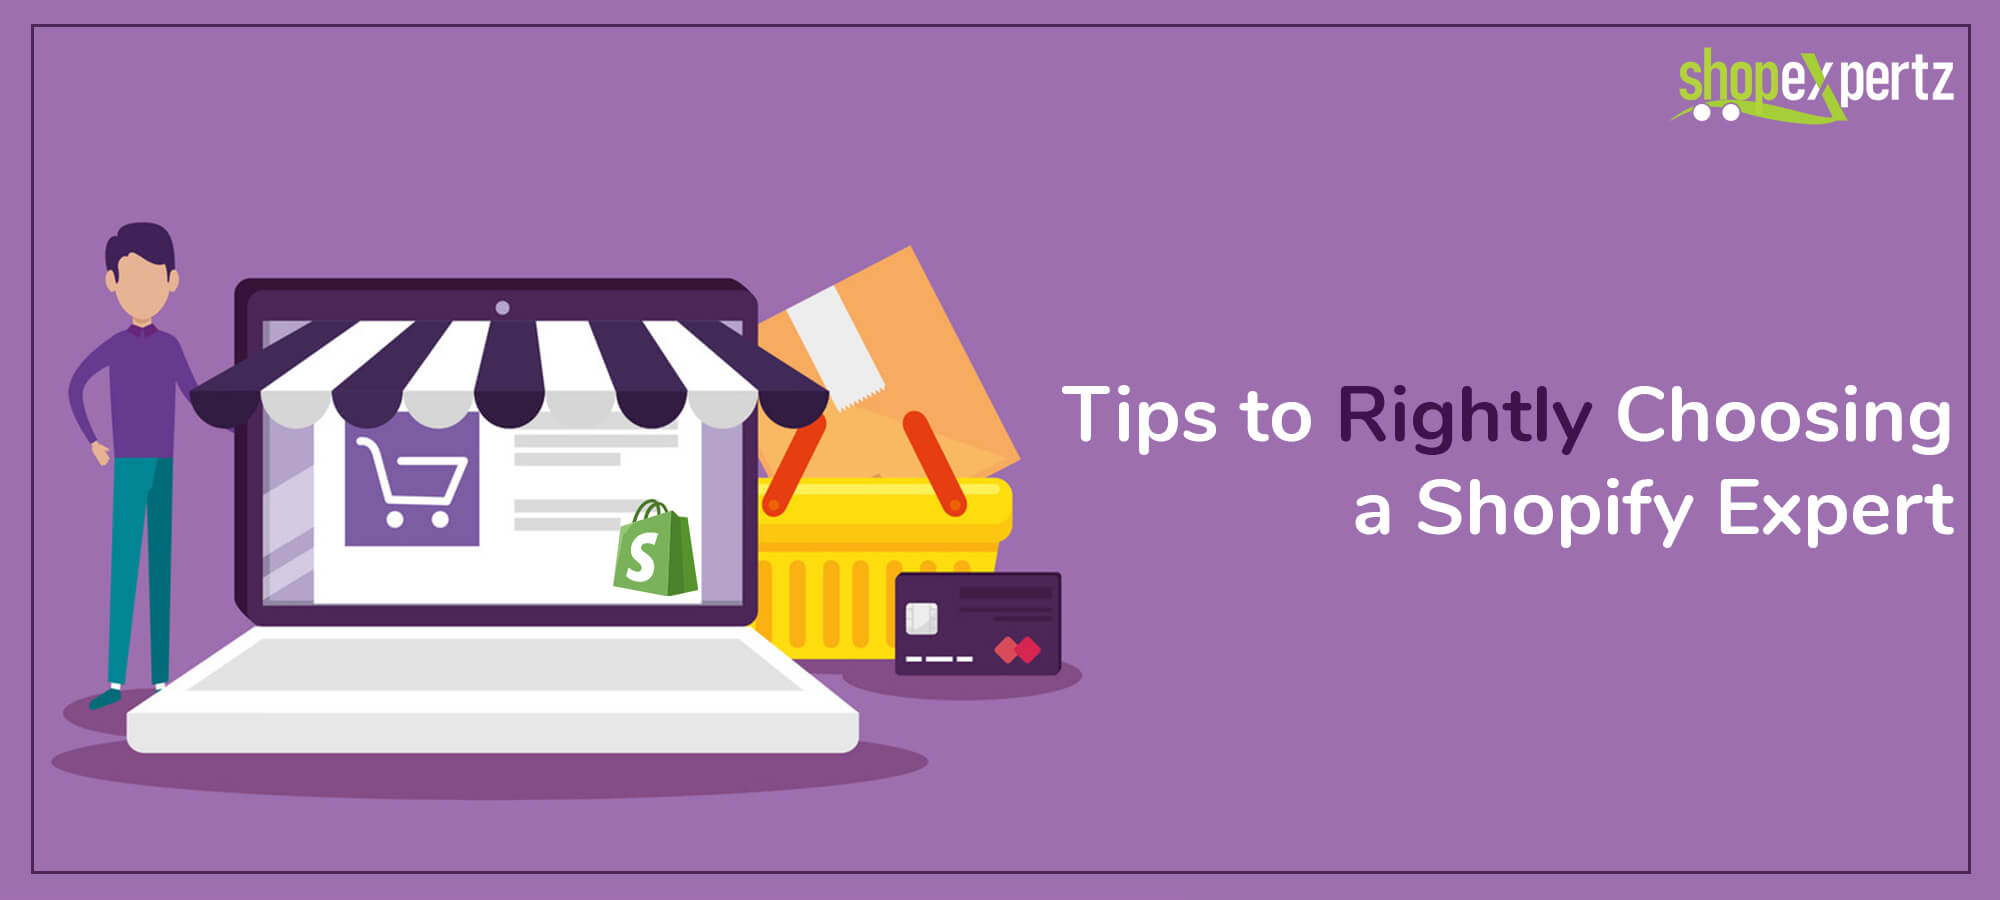 Tips to Rightly Choosing a Shopify Expert